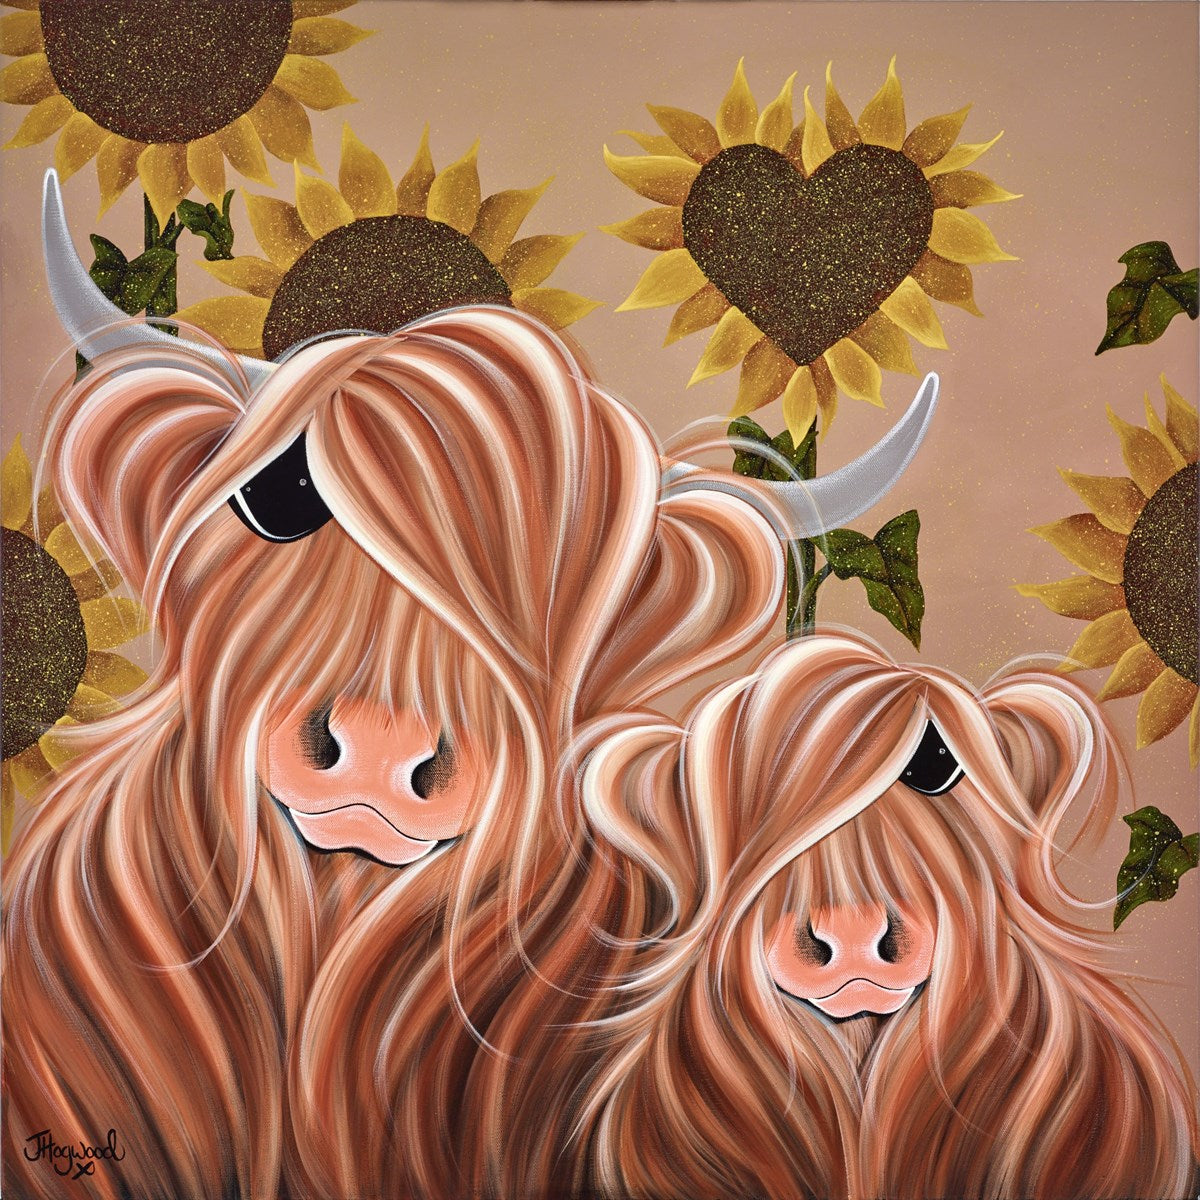 My Sunshine by Jennifer Hogwood